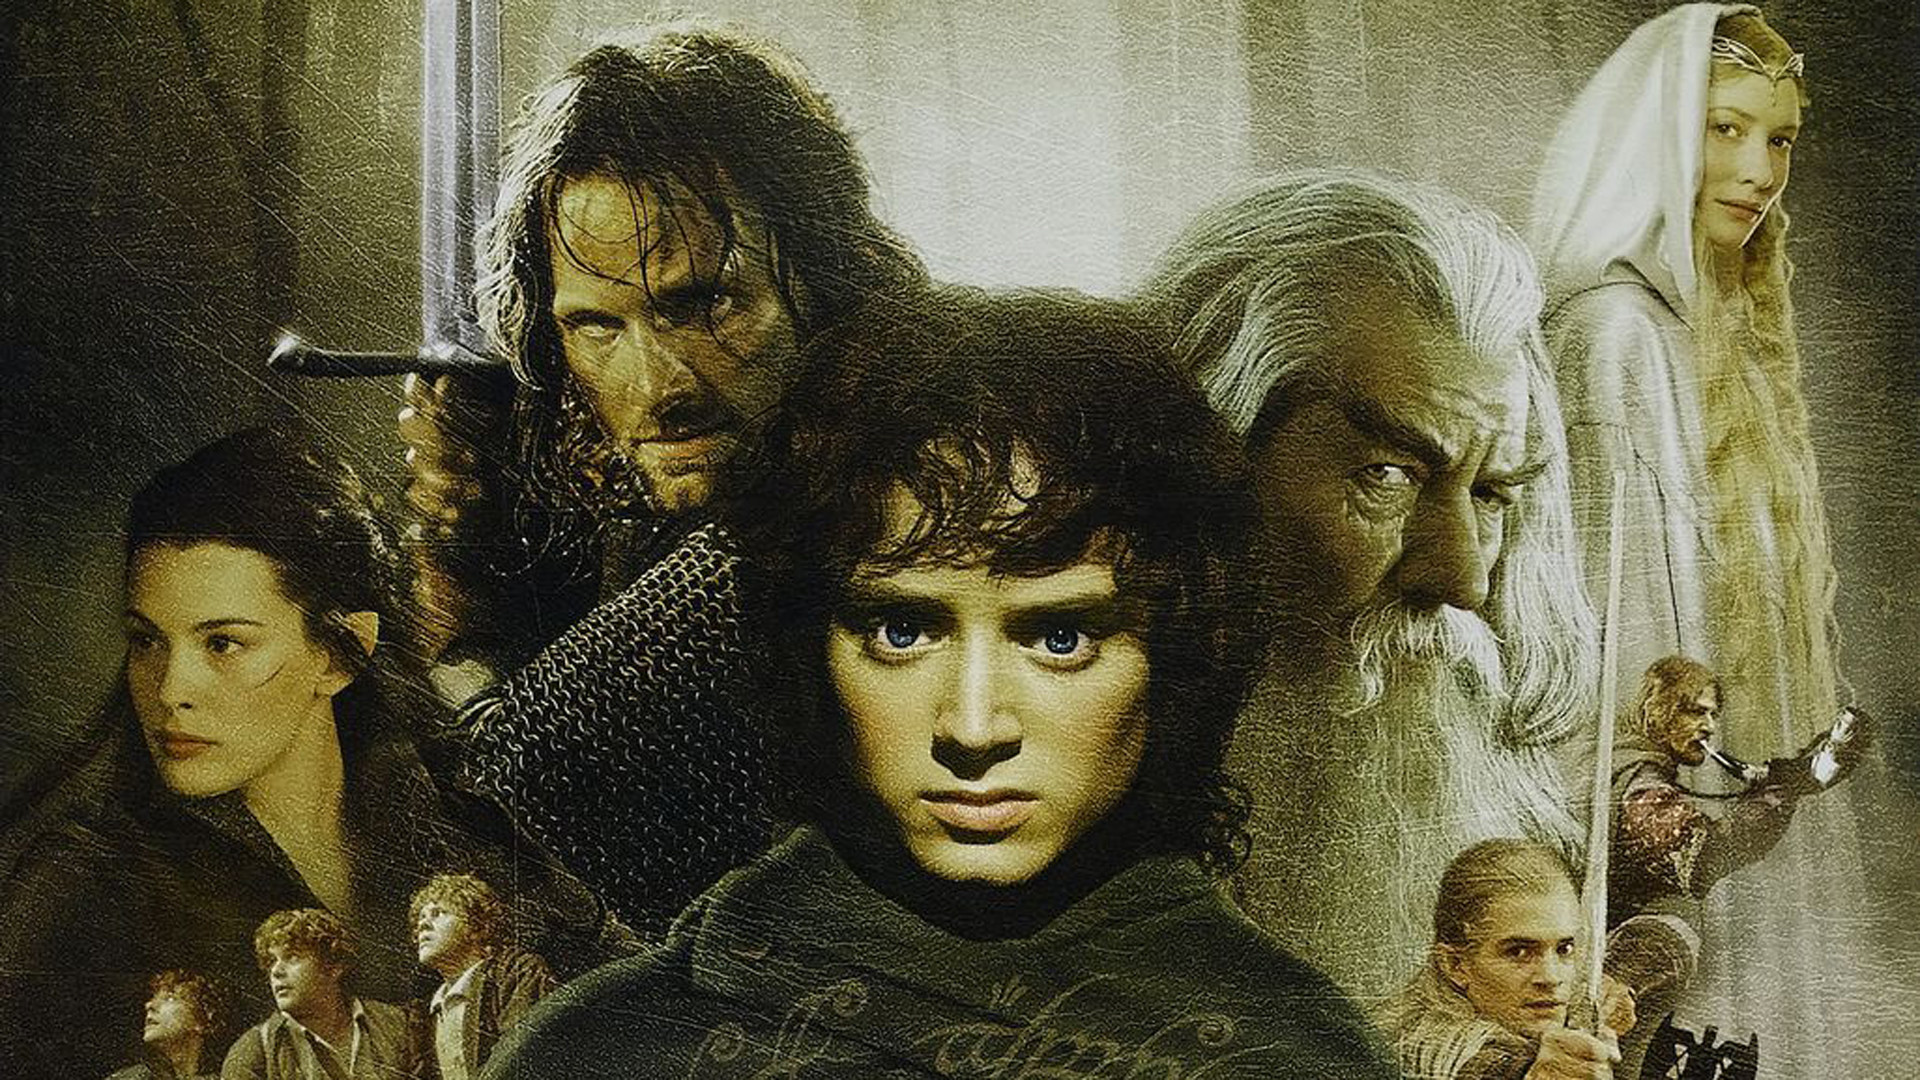 Lord of the Rings Fellowship of the Ring Movie